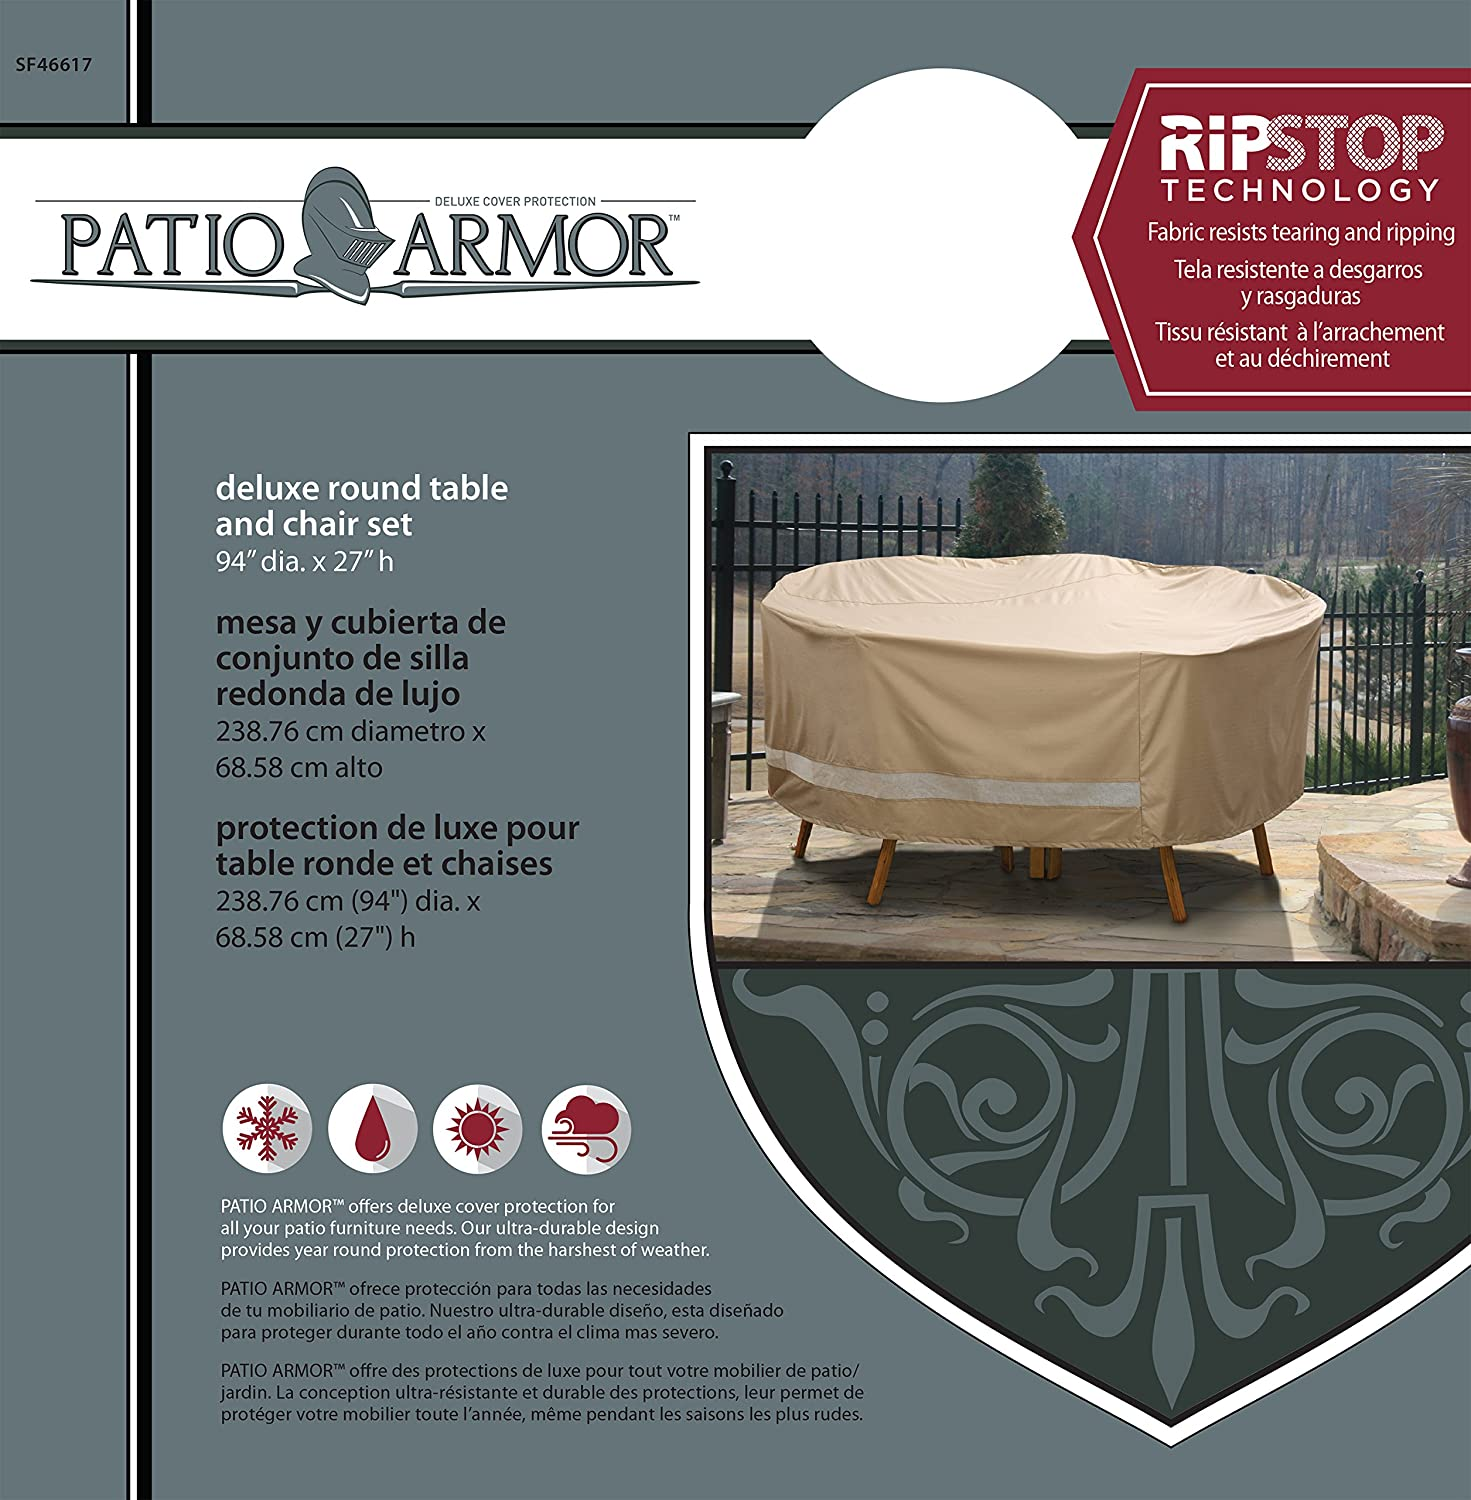 Amazon.com : Sure Fit Patio Armour Ripstop Deluxe Round Table and Chair Set Cover : Garden & Outdoor